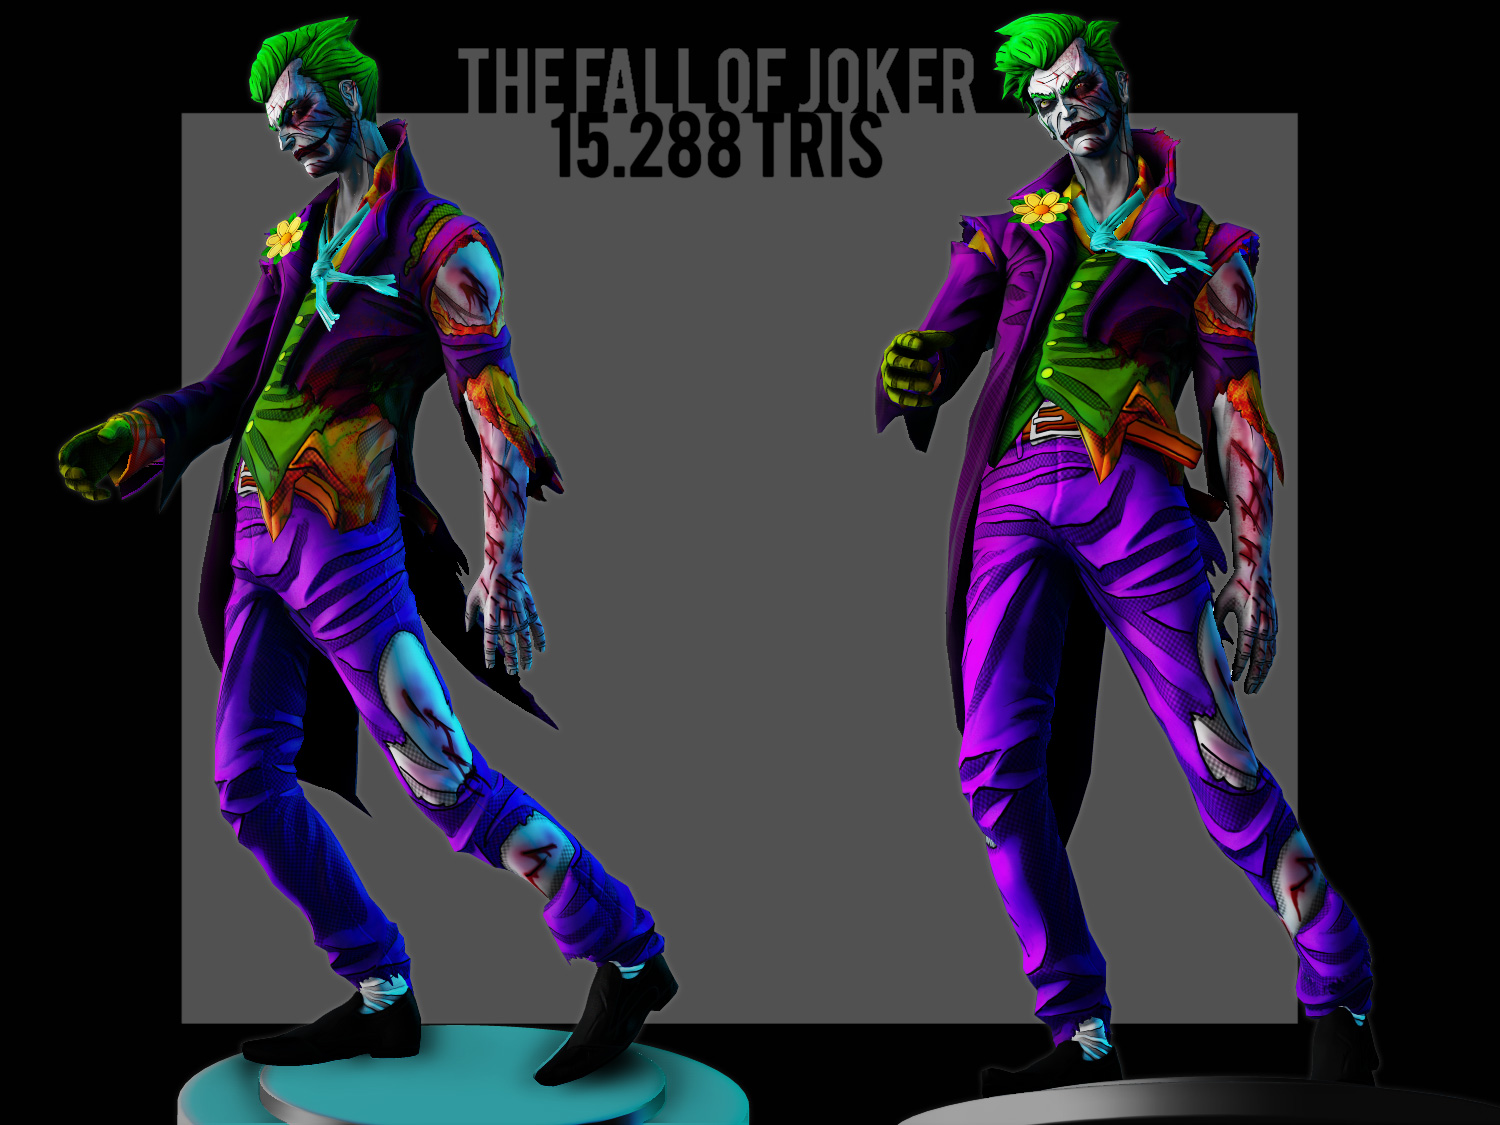 _final__joker___final_stand_by_yuliuskrisna-d7cj1bt.jpg